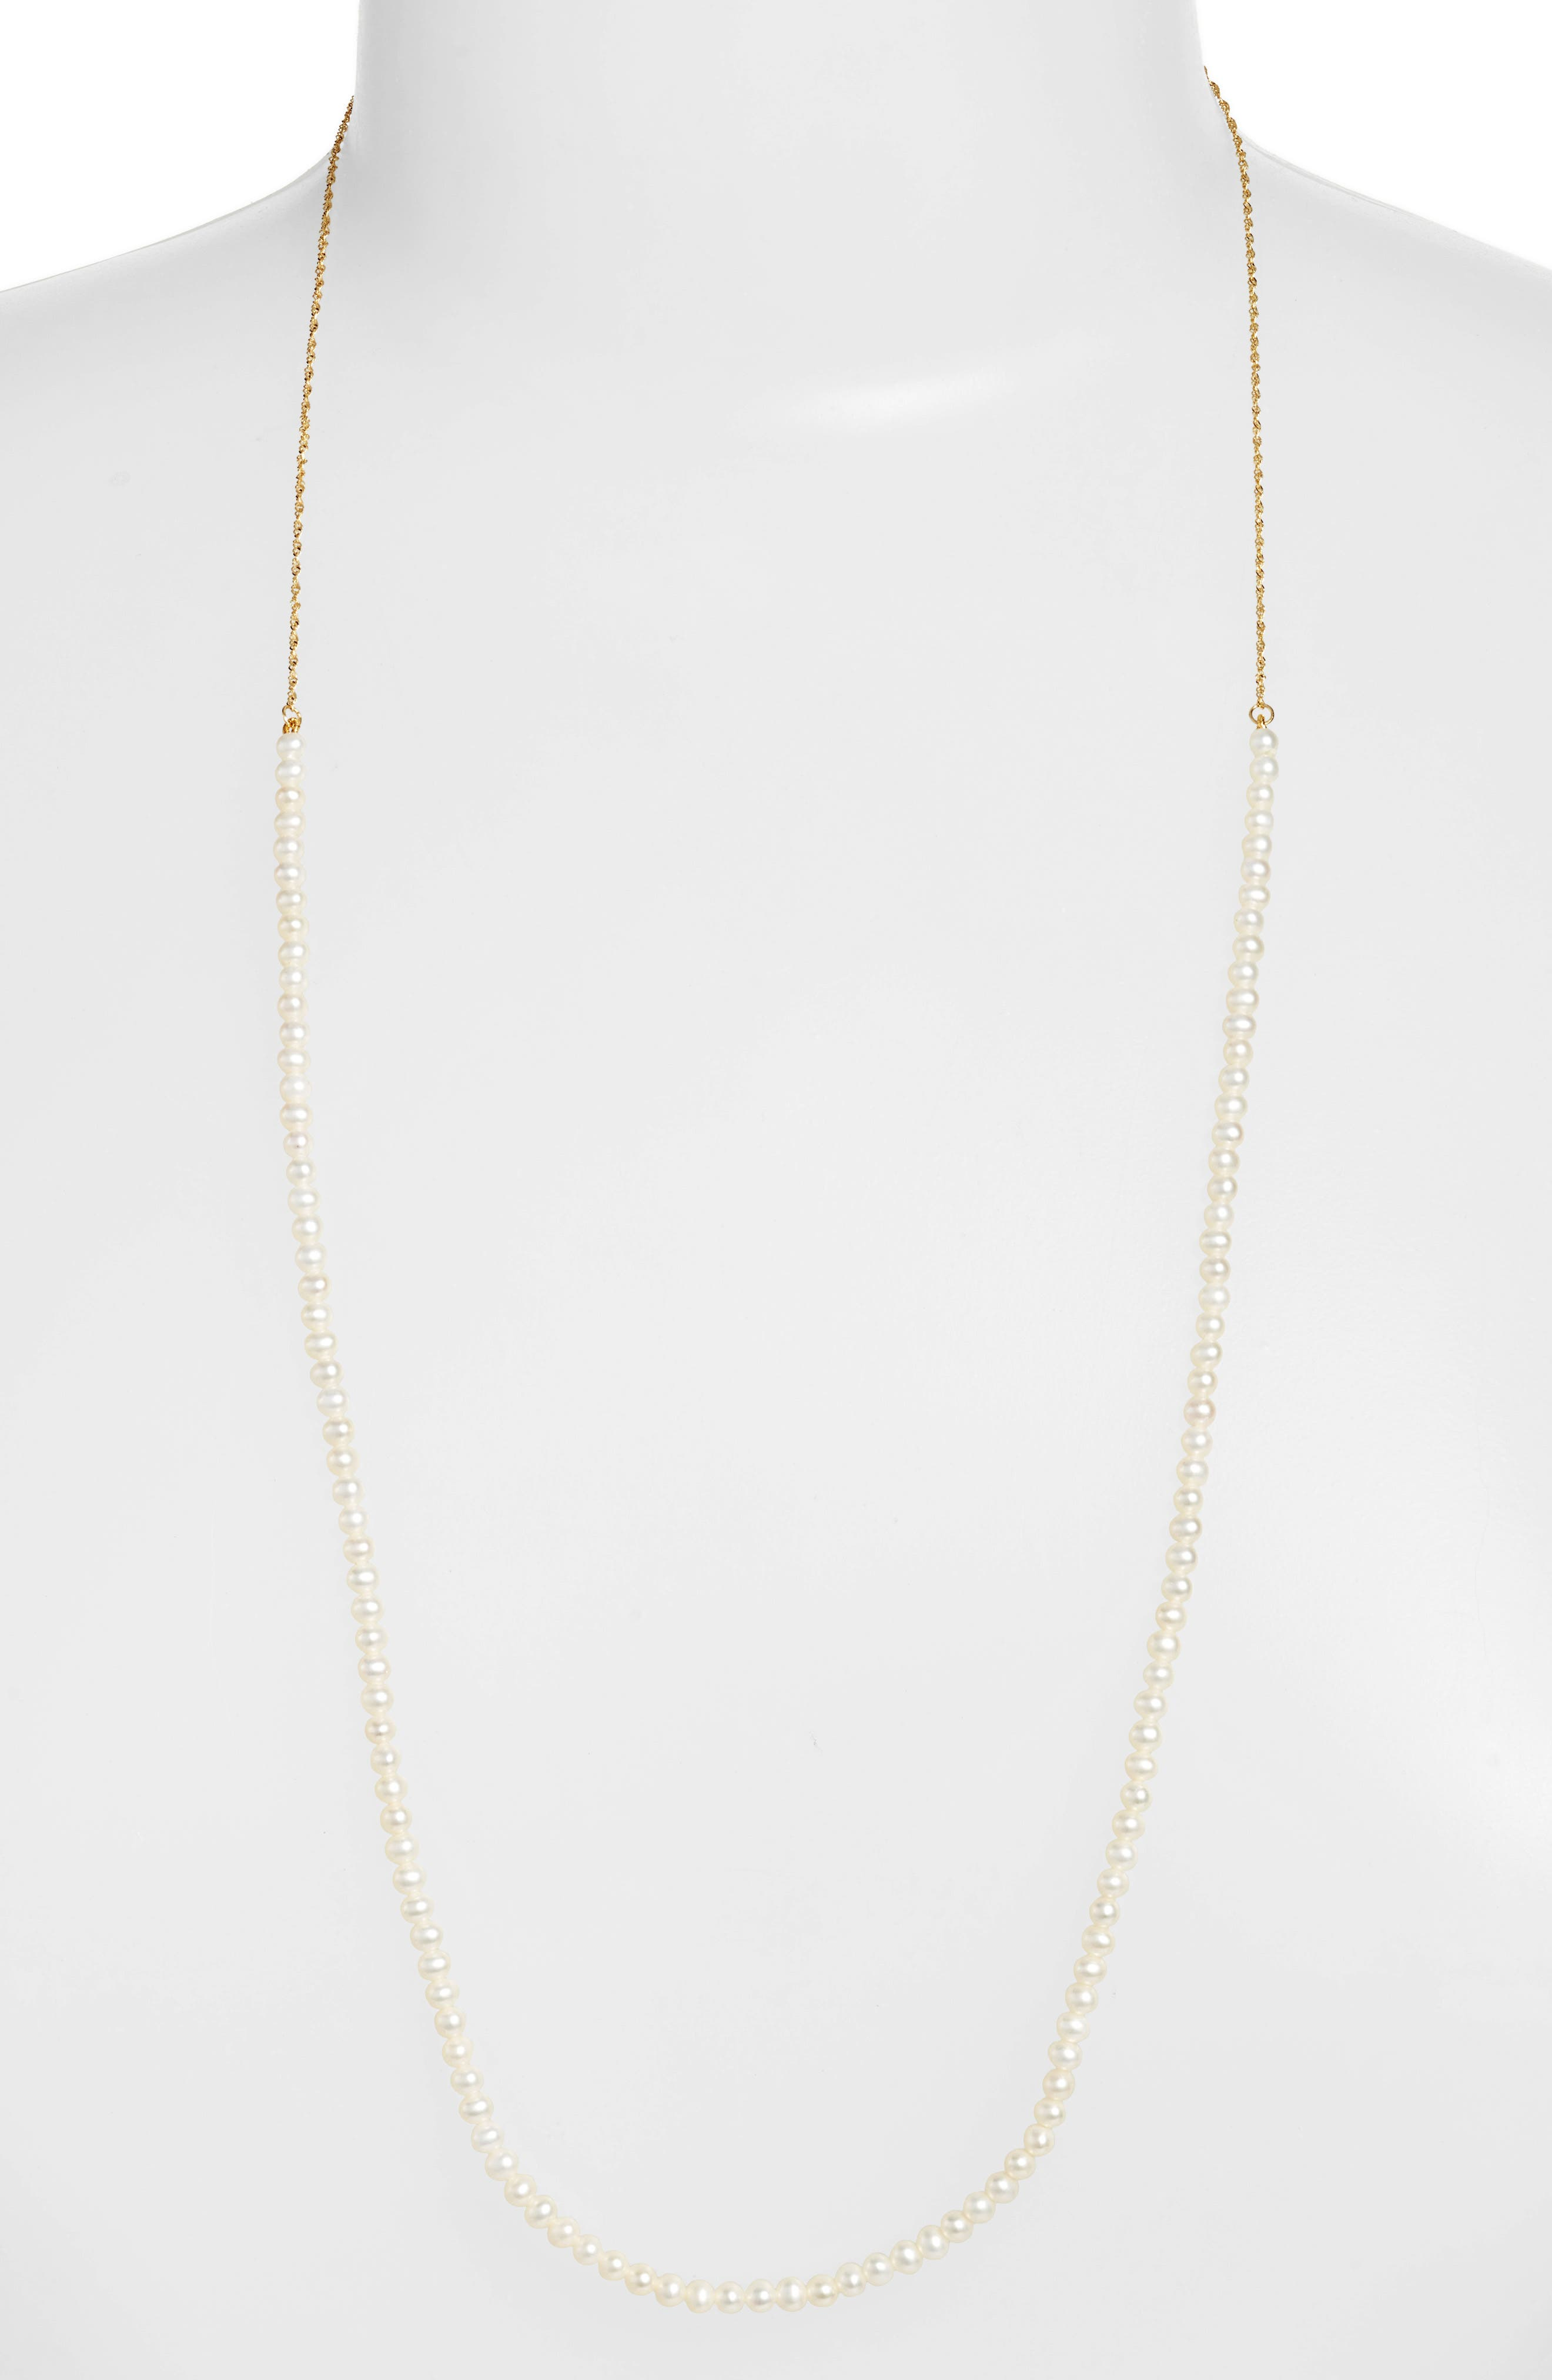 Long Pearl Strand Necklace,                             Alternate thumbnail 2, color,                             YELLOW GOLD